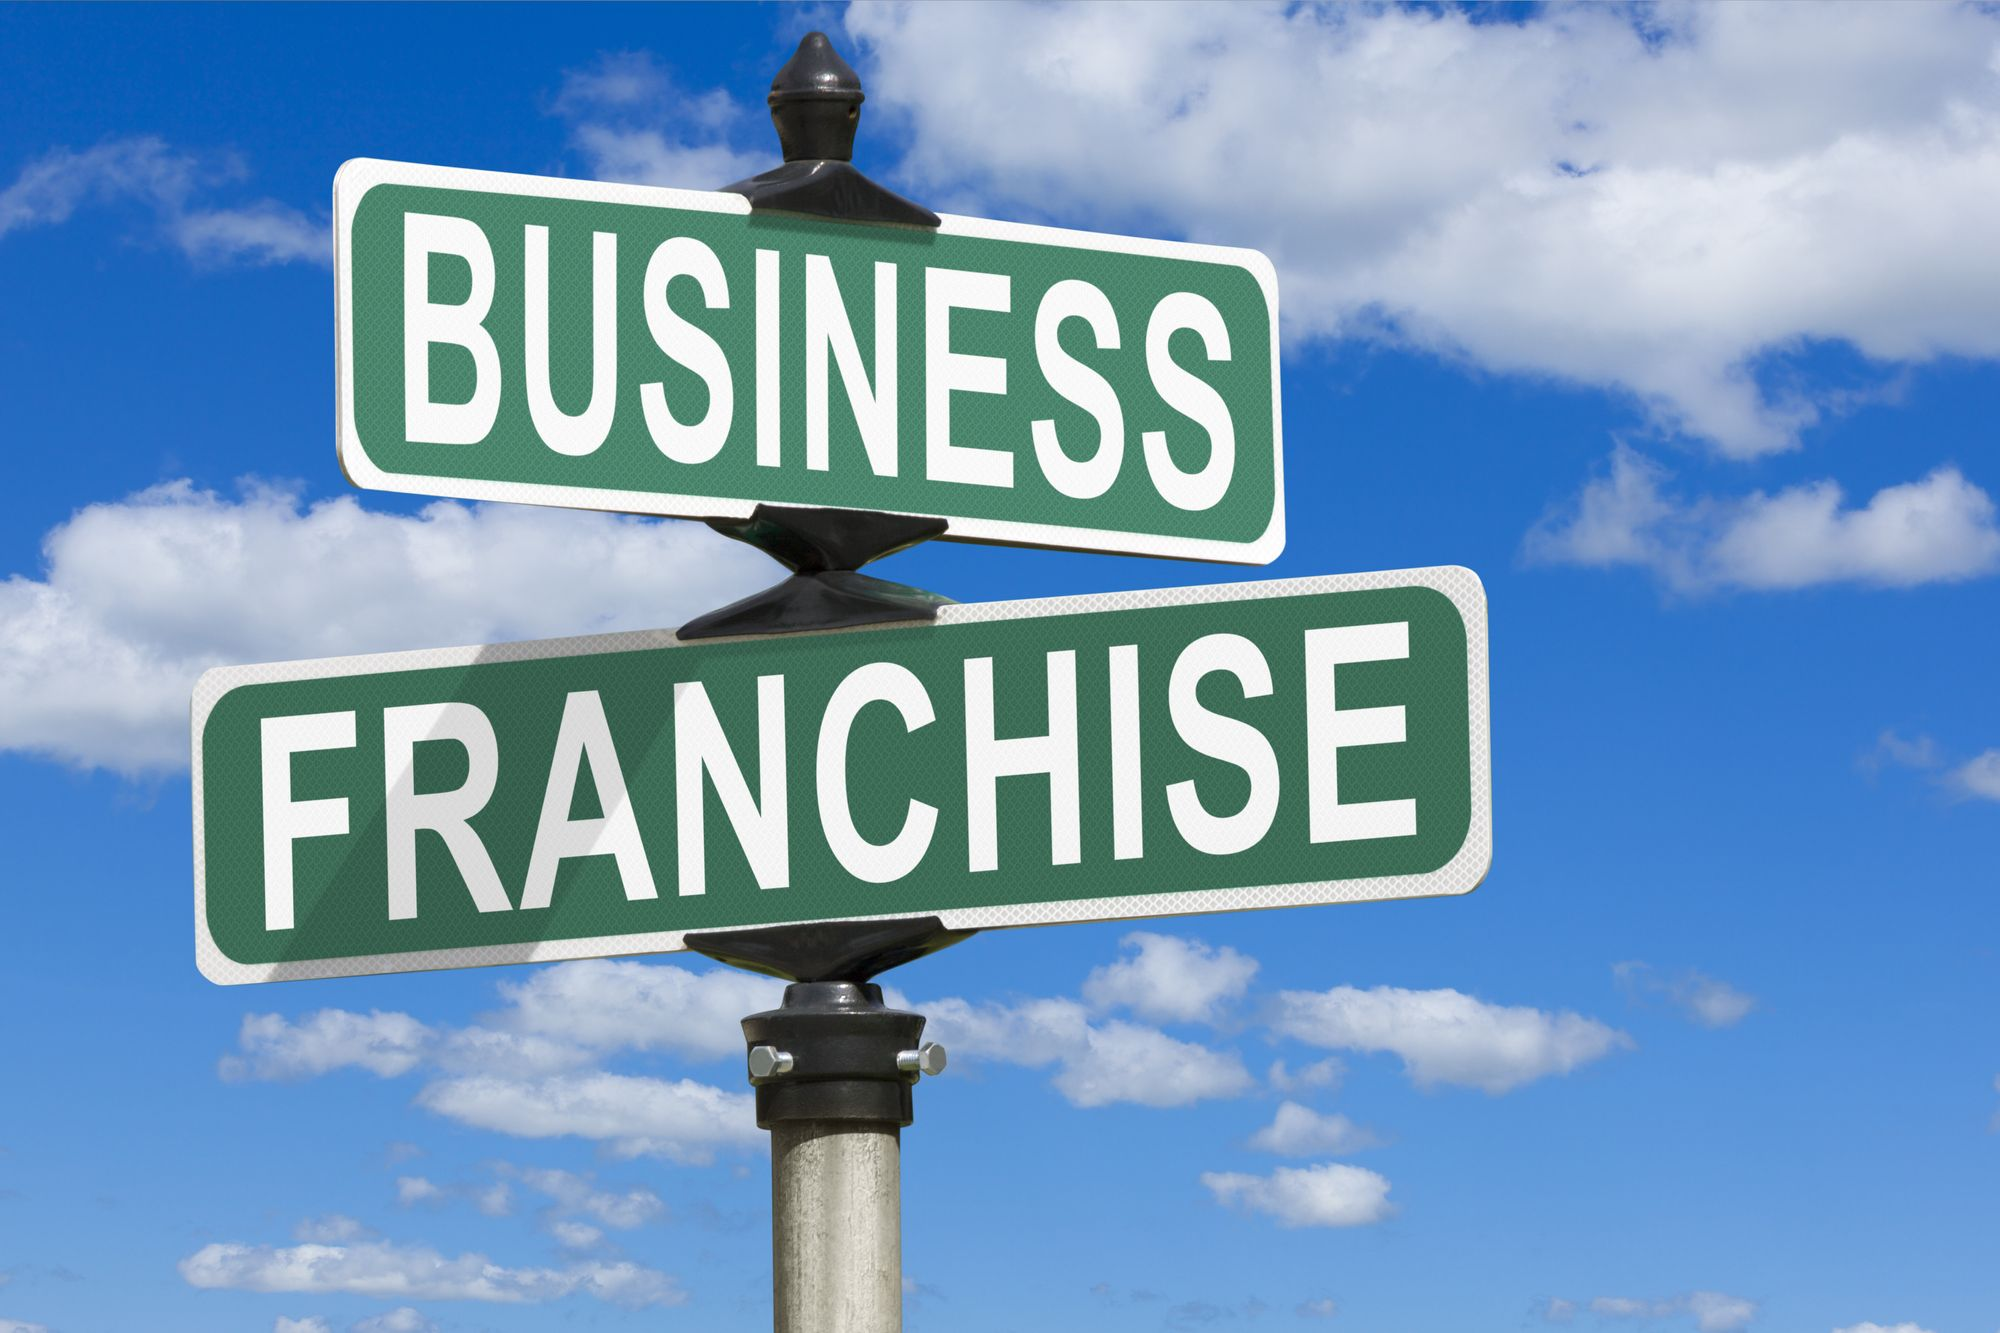 20181212202046 GettyImages 171579730 - 3 Reasons Buying a Franchise Might Be Better Than Starting Your Own Business